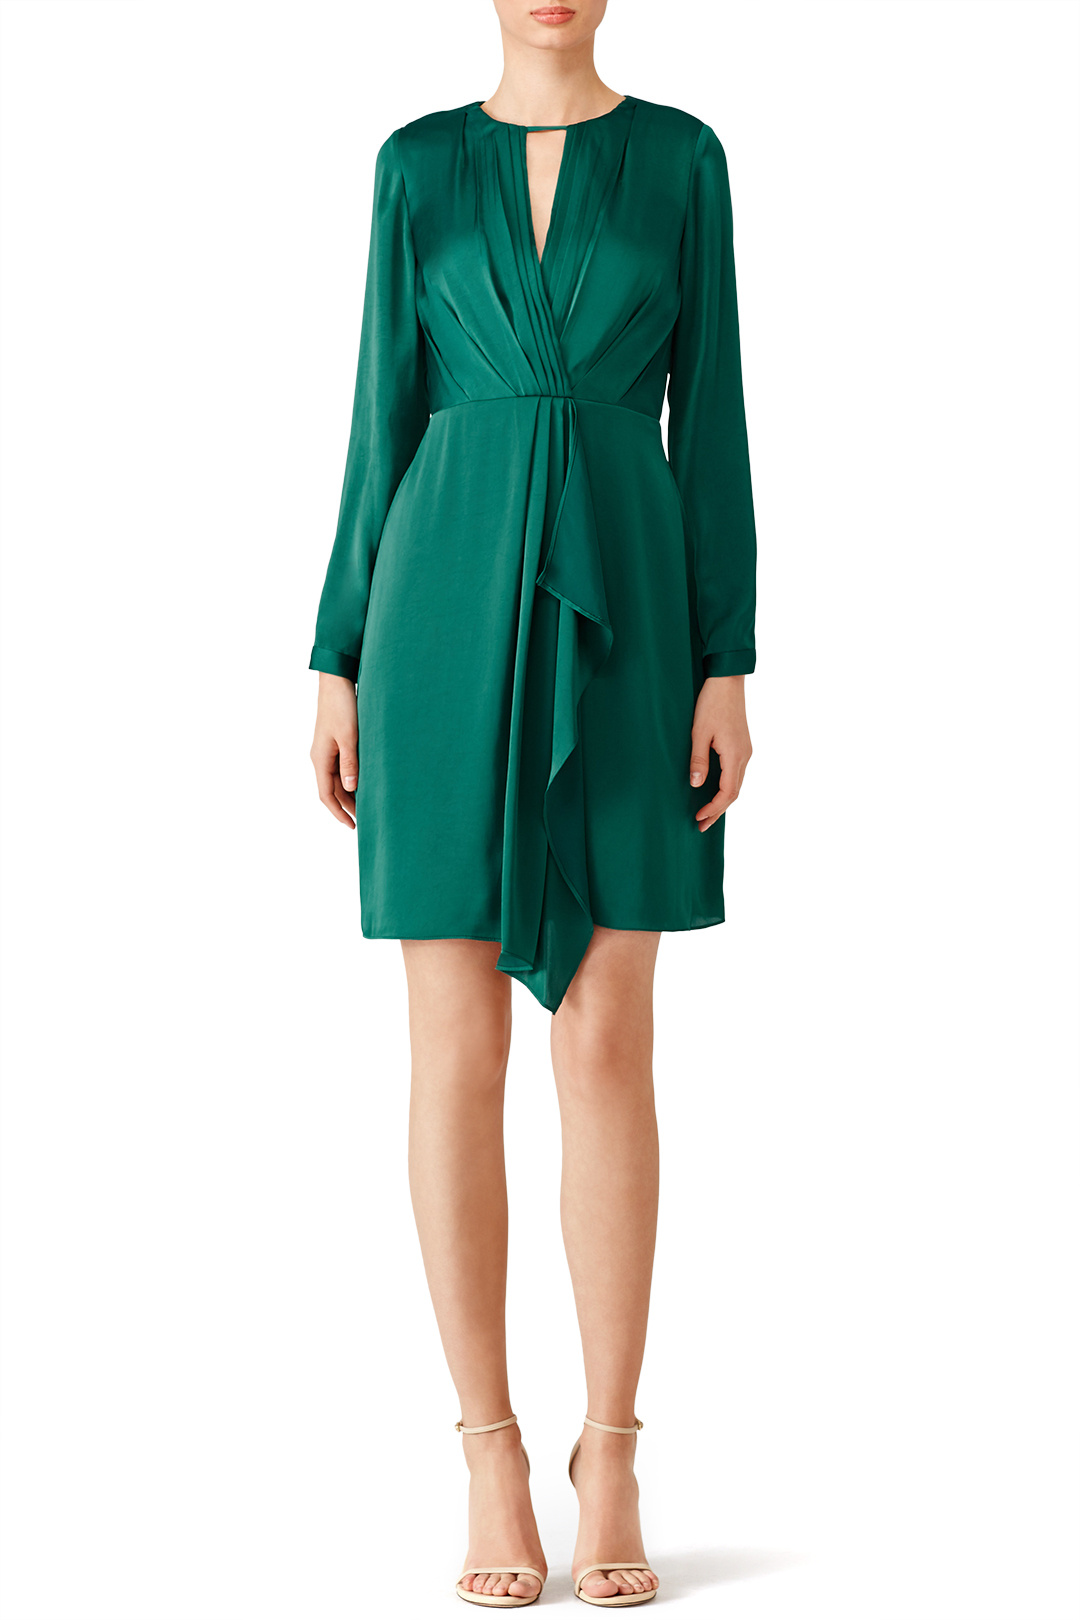 Shoshanna Green Addison Dress - I wore this on air when I anchored my last Thanksgiving show. It was so pretty and I got ZERO mean emails about it. So that's a win lol.